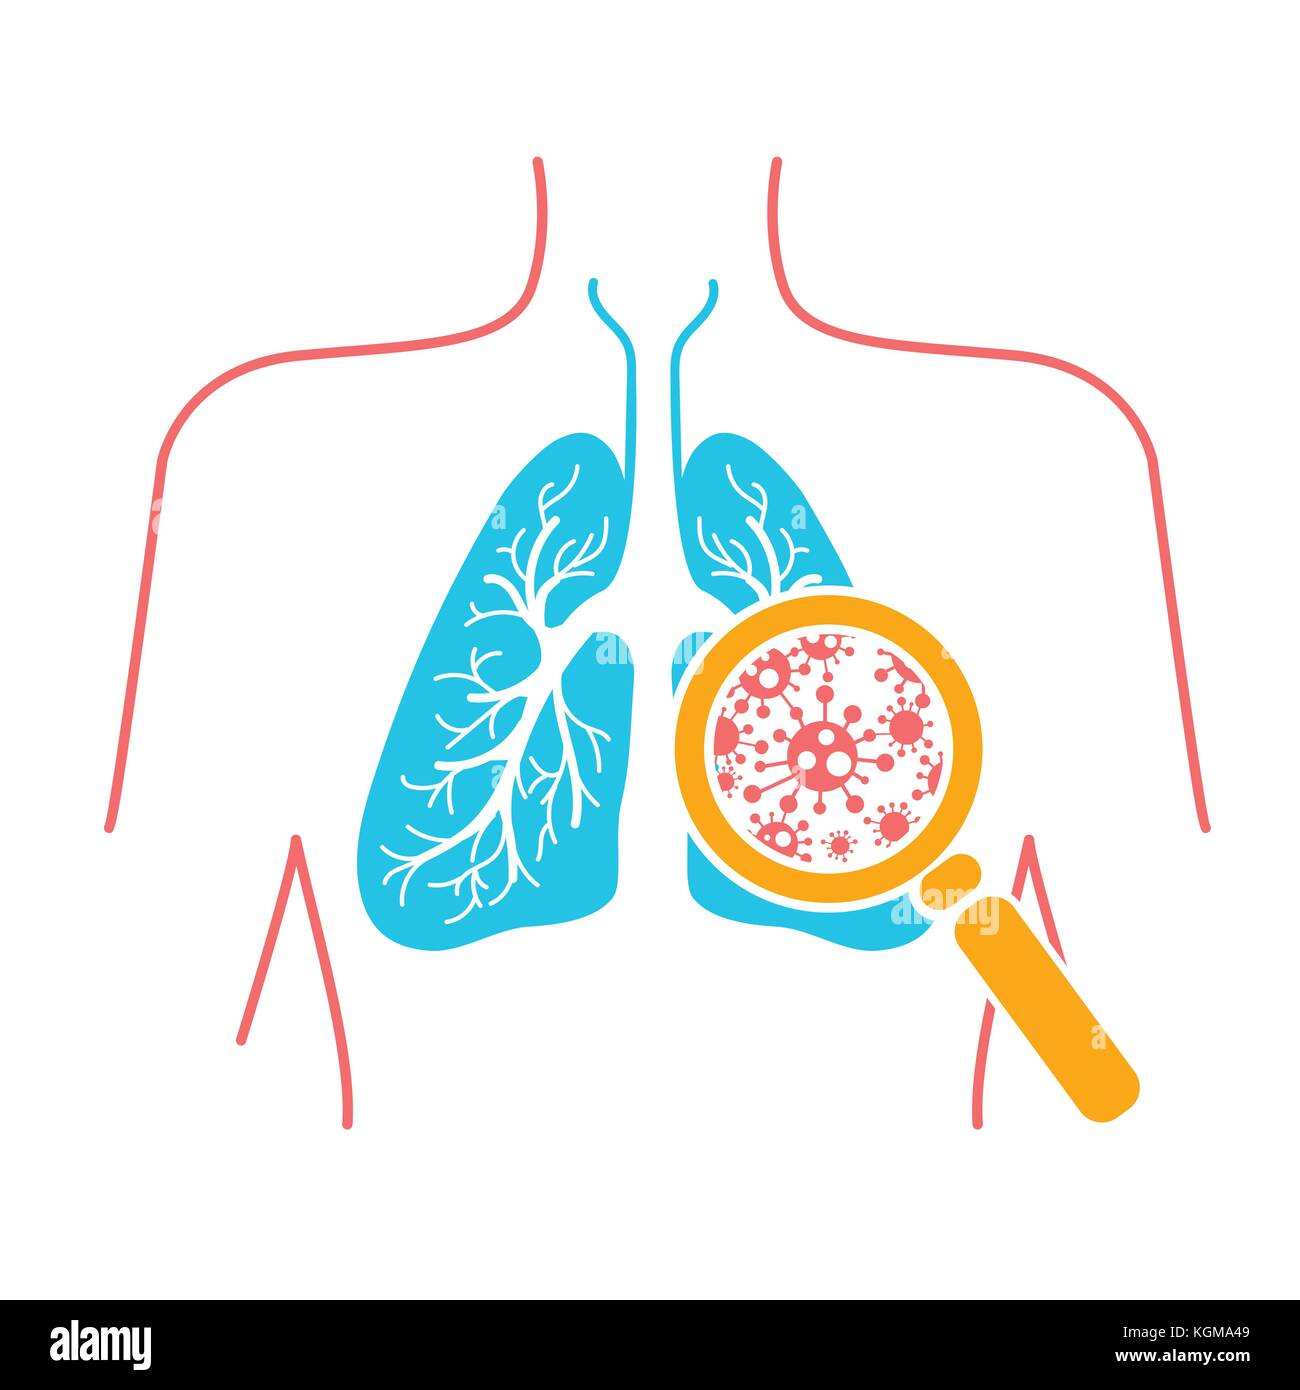 icon of lung disease pneumonia asthma cancer in the